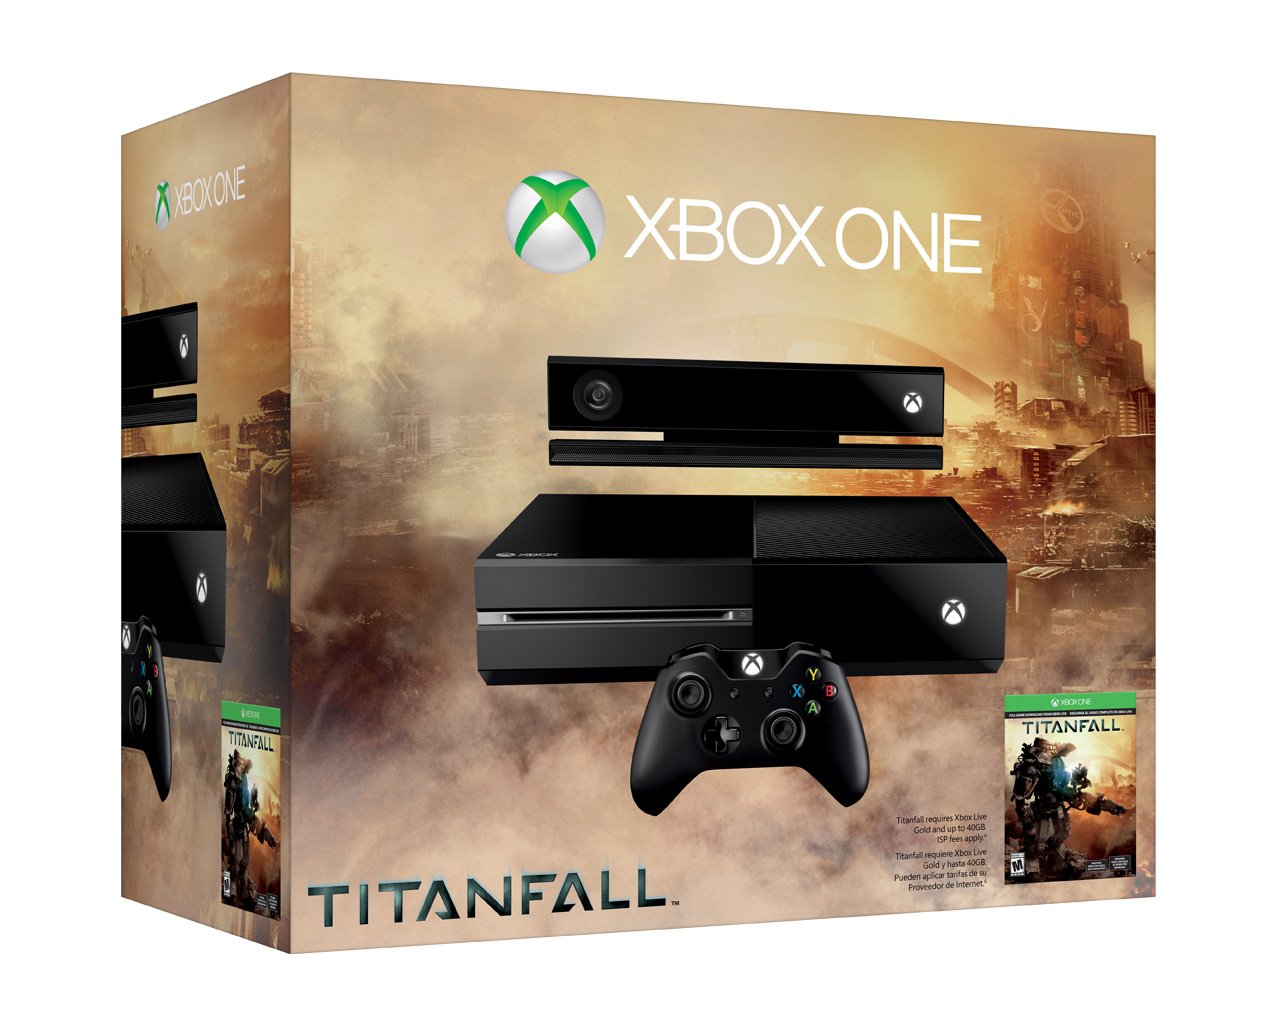 Xbox One Titanfall Special Edition Bundle Announced 1